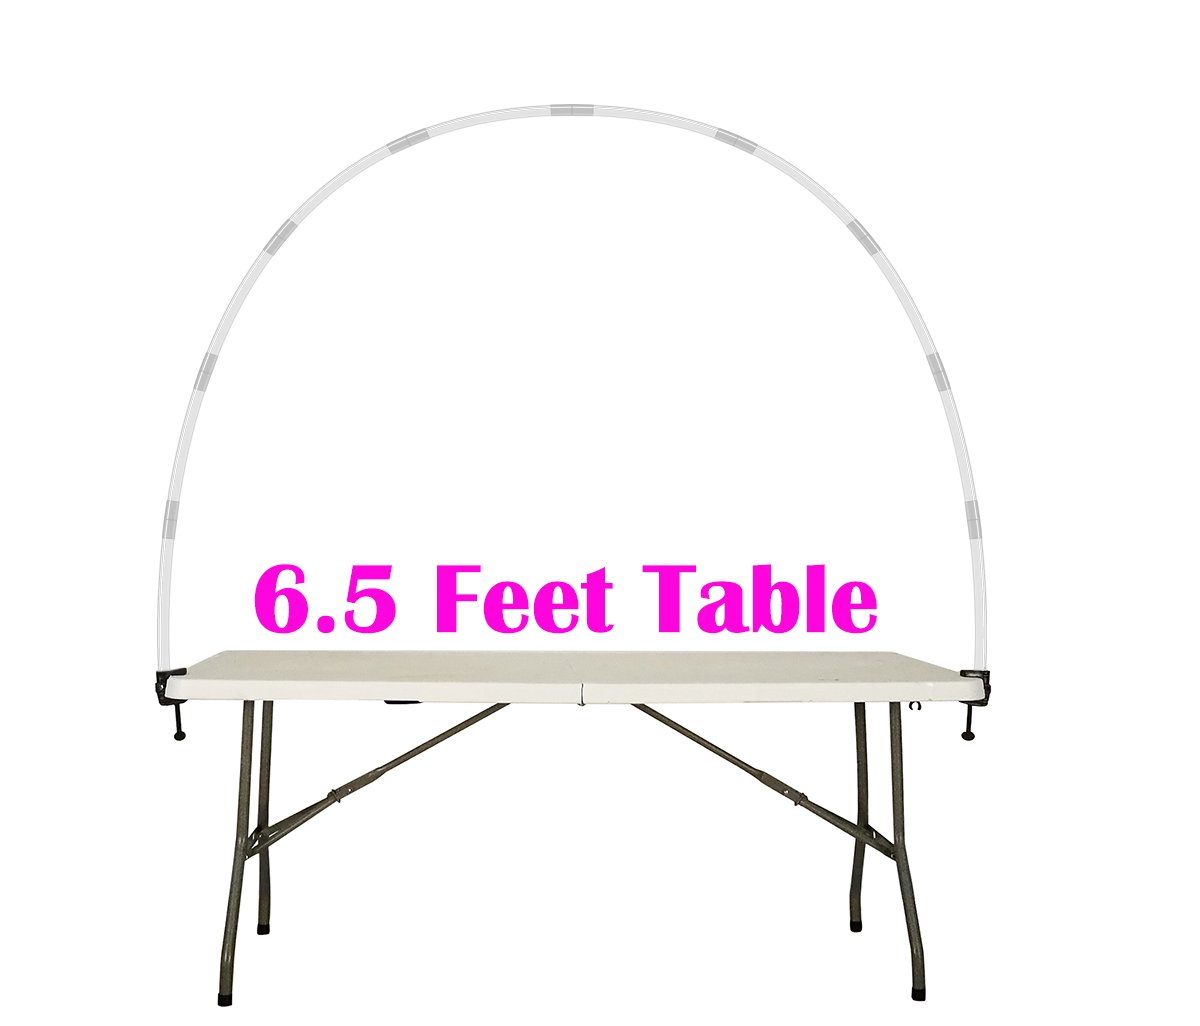 Balloon Arch Kit Adjustable for Different Table Sizes Birthday, Wedding, Christmas, and Graduation Party by Party Zealot (Image #5)